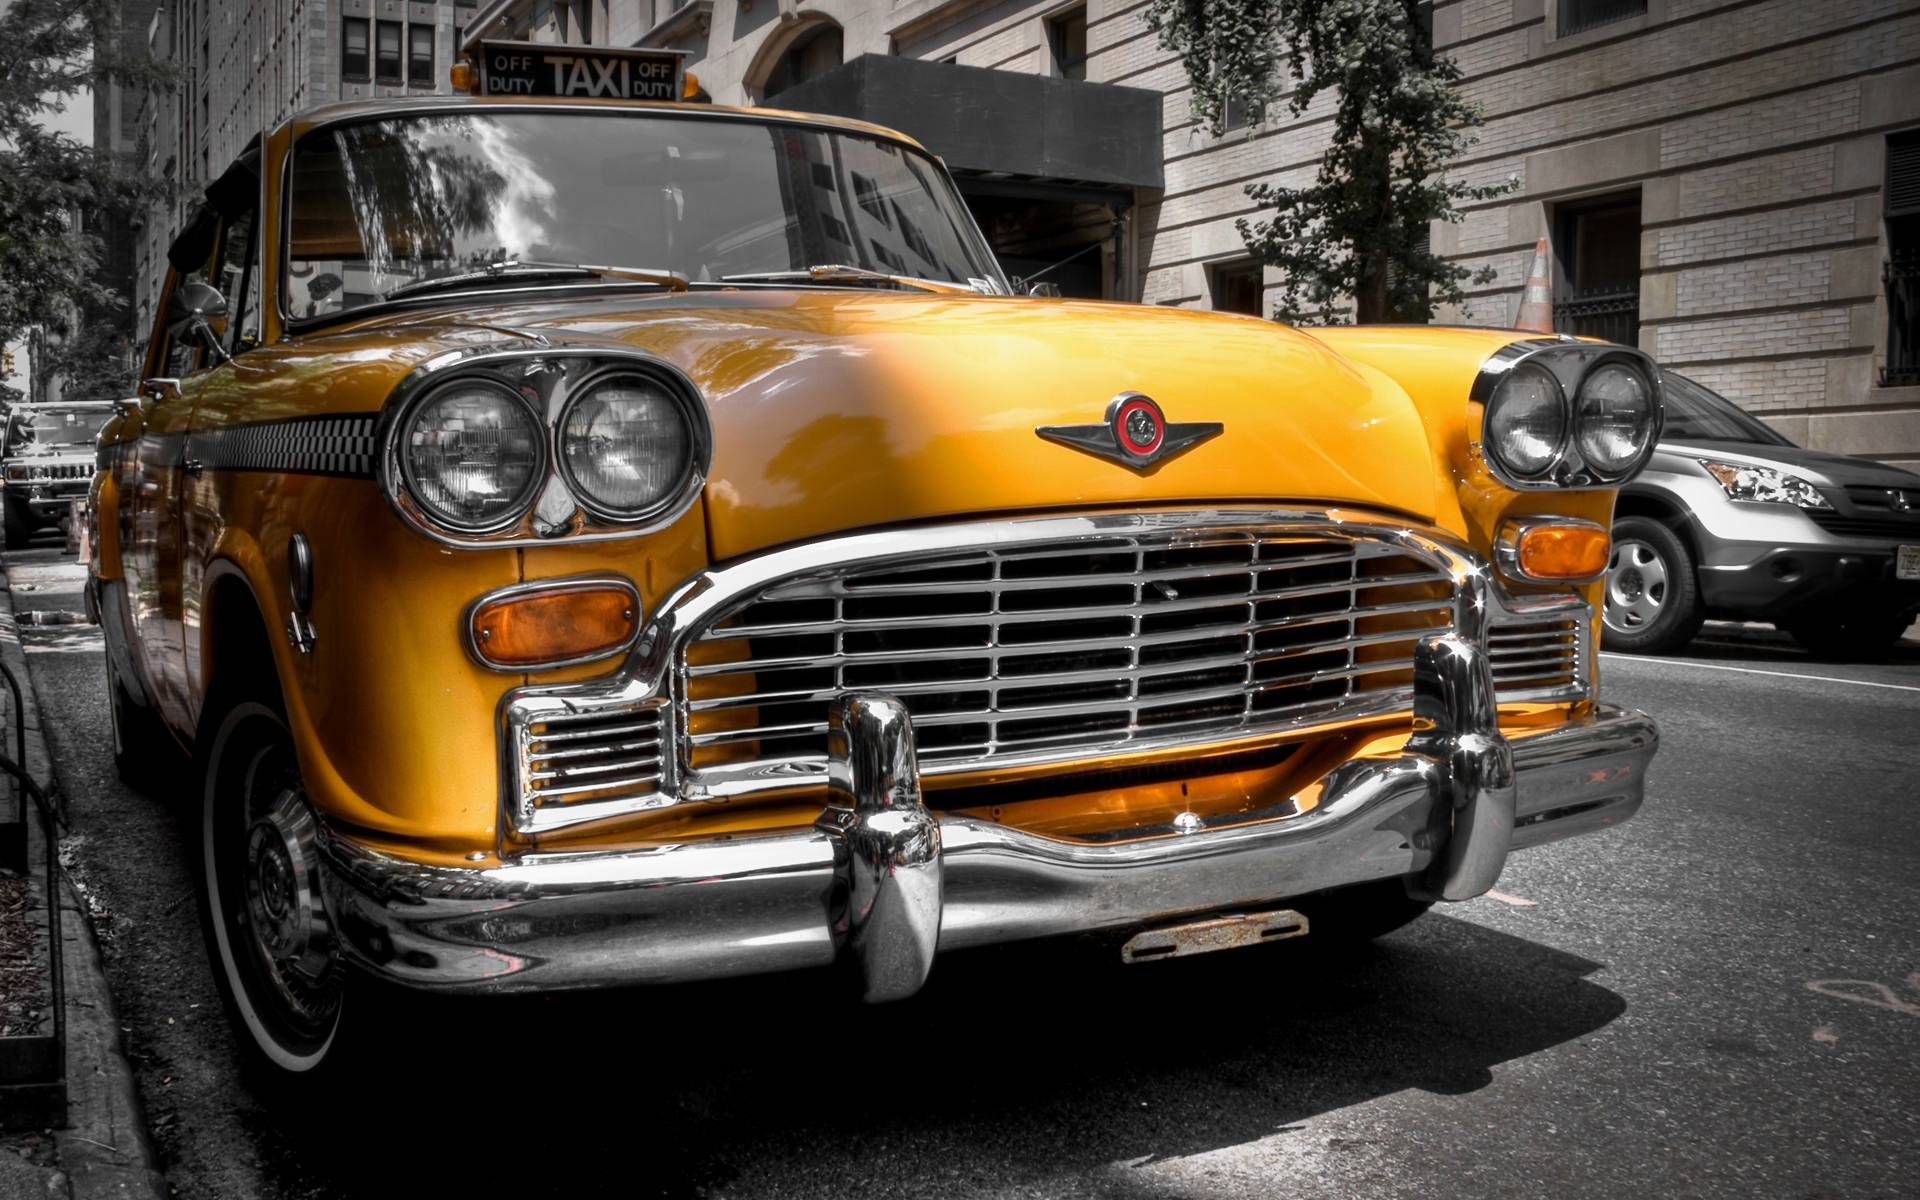 Classic Car Hd Wallpapers